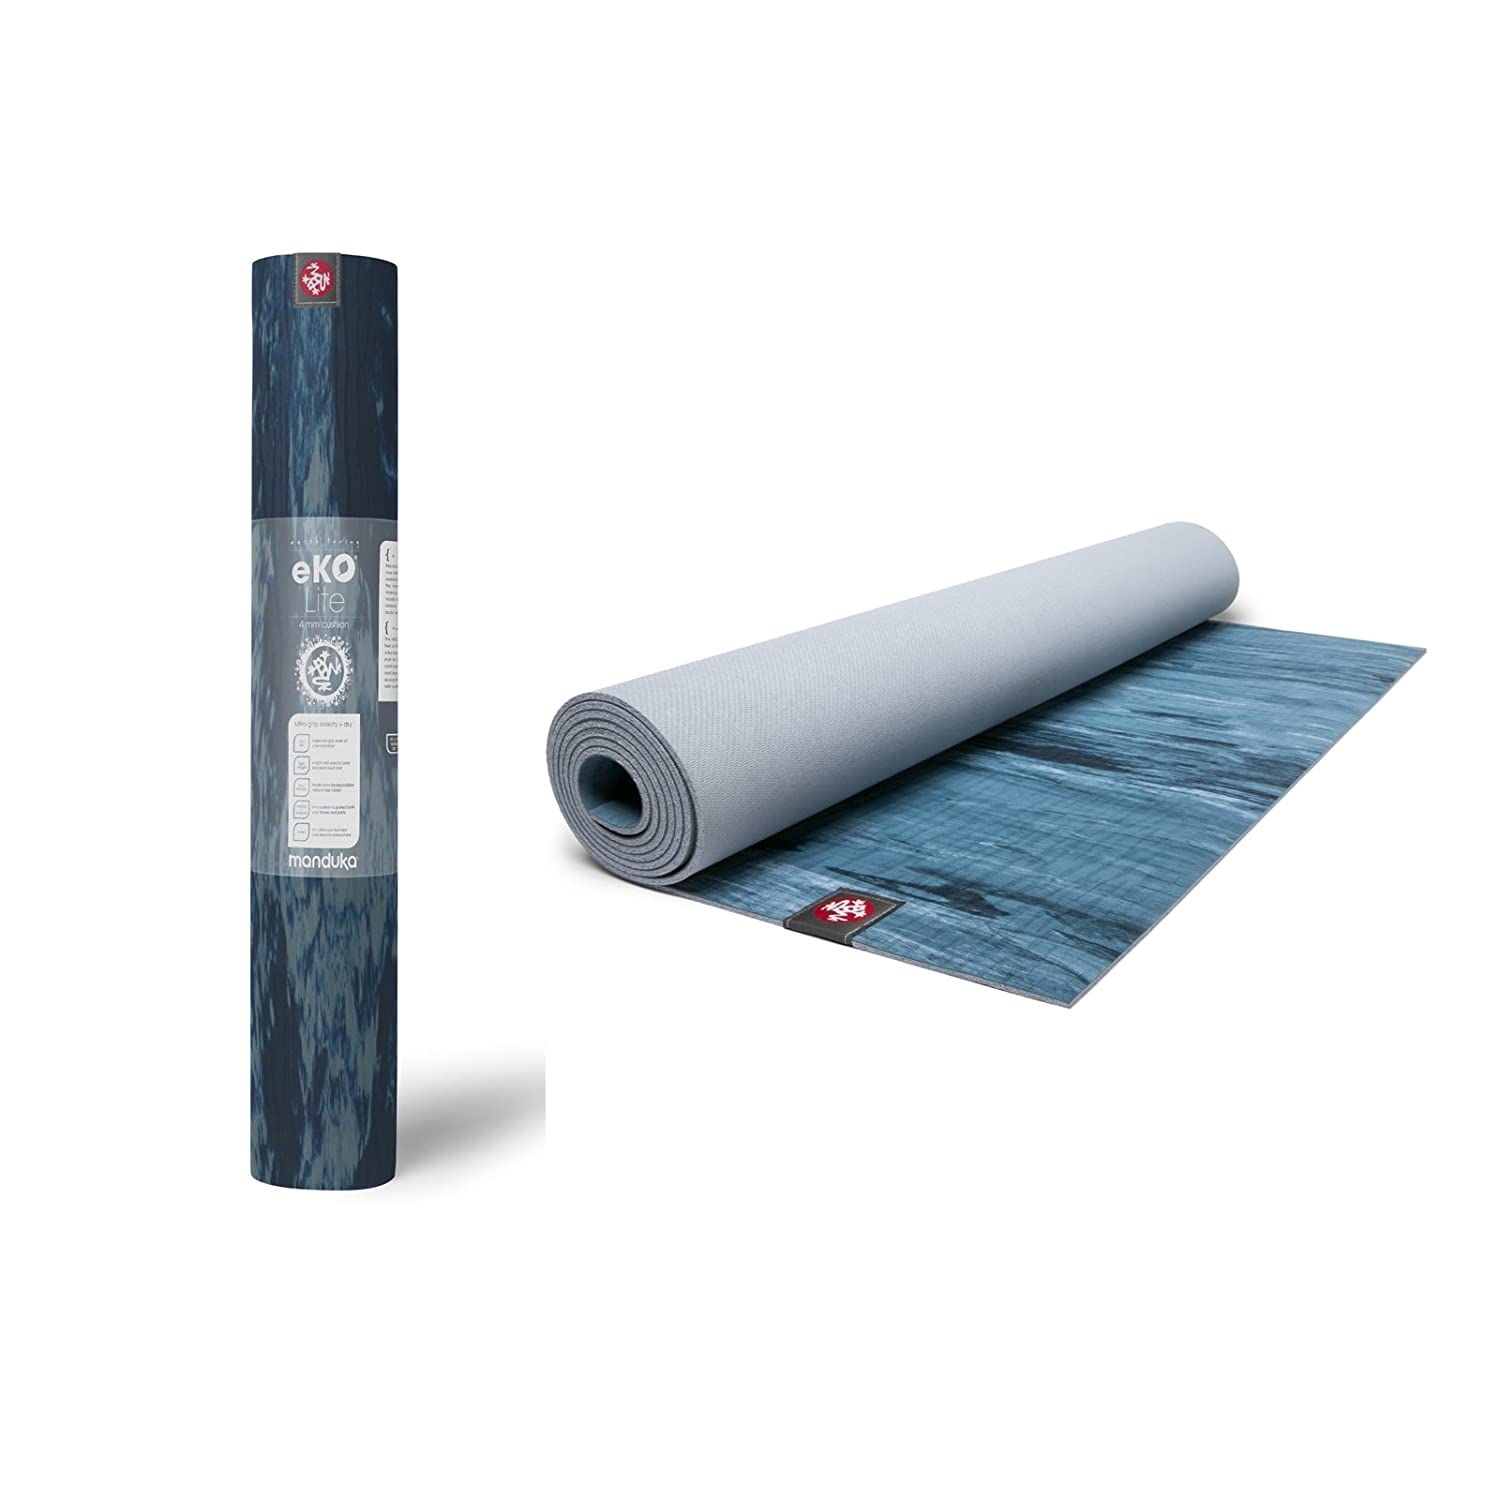 Manduka eKO Lite - Esterilla de yoga (4 mm), Ebb: Amazon.es ...